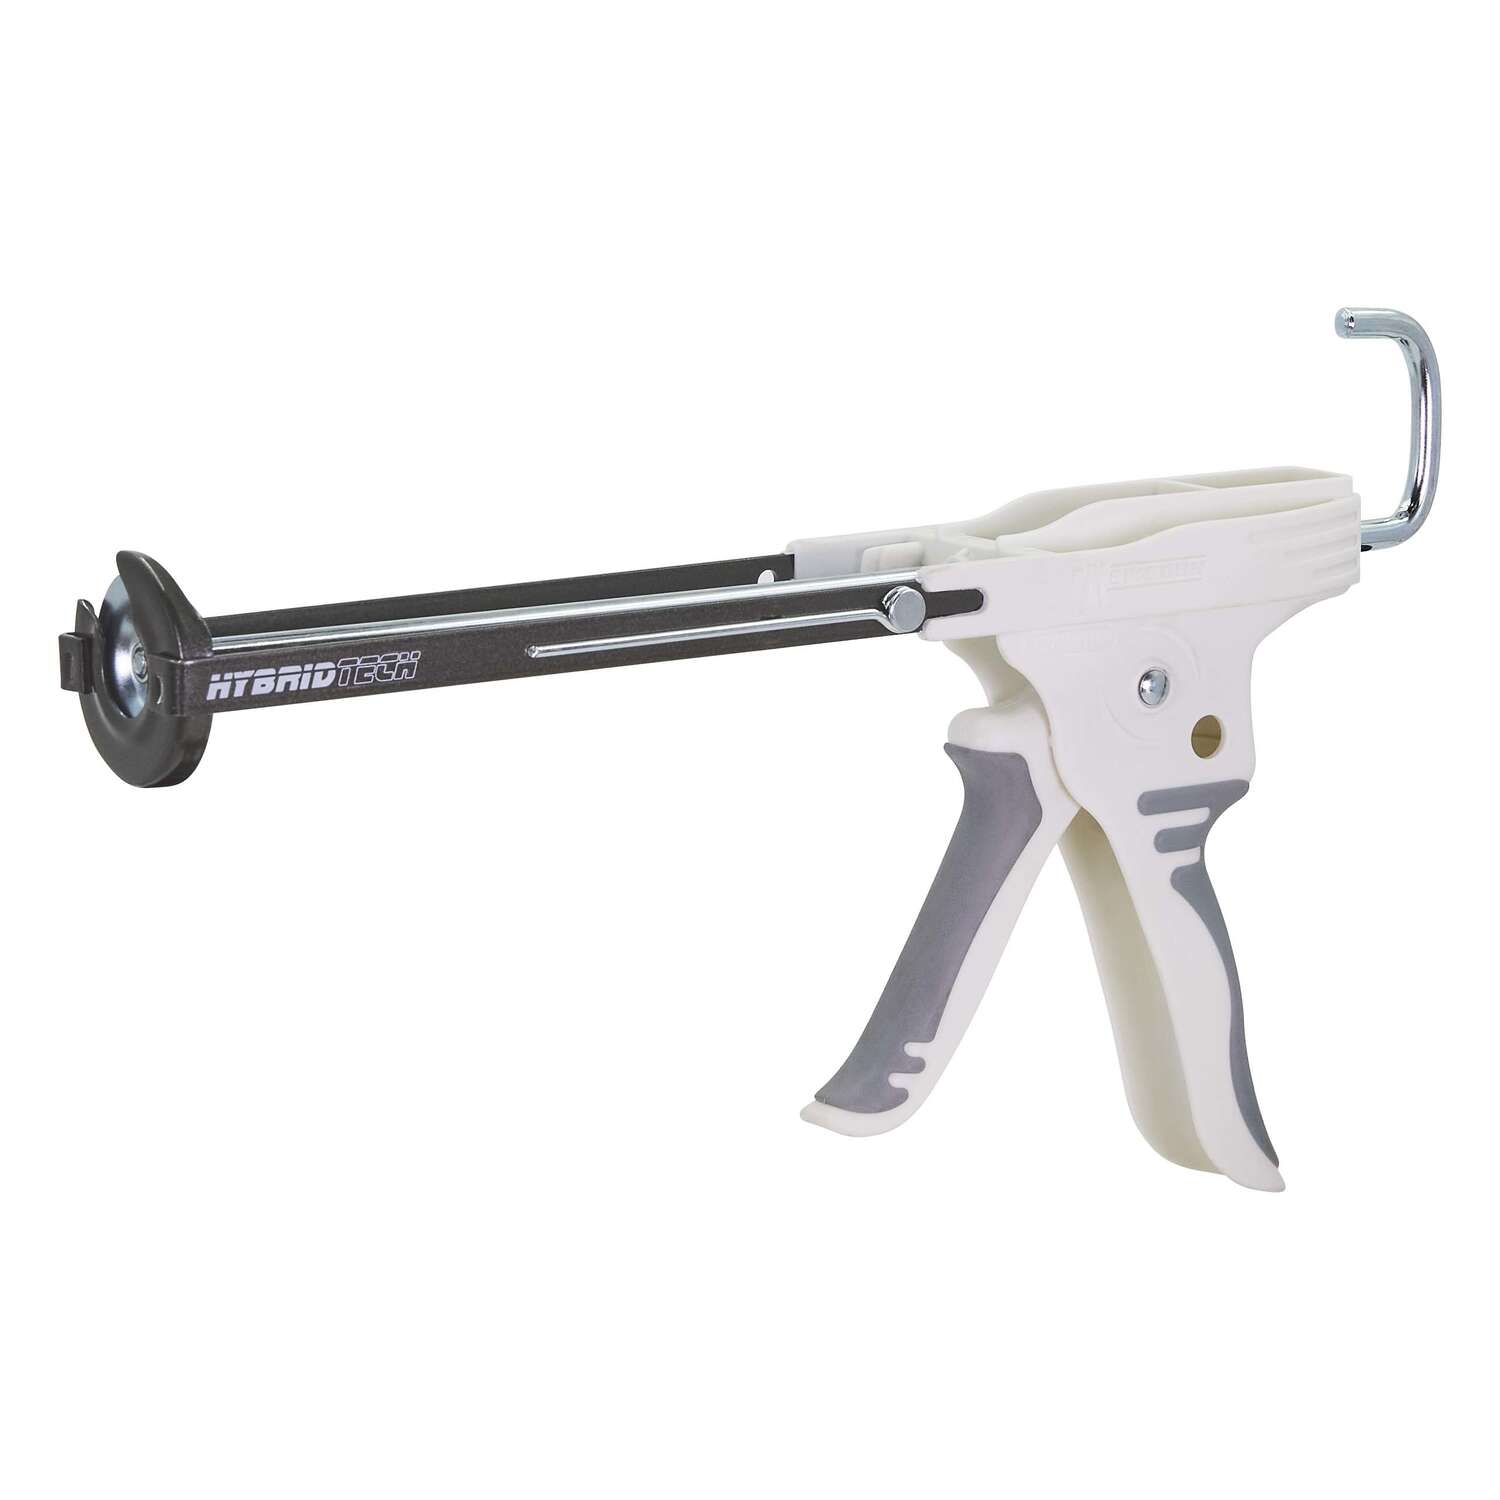 Newborn  Hybrid Tech  Lightweight  Steel  Caulking Gun